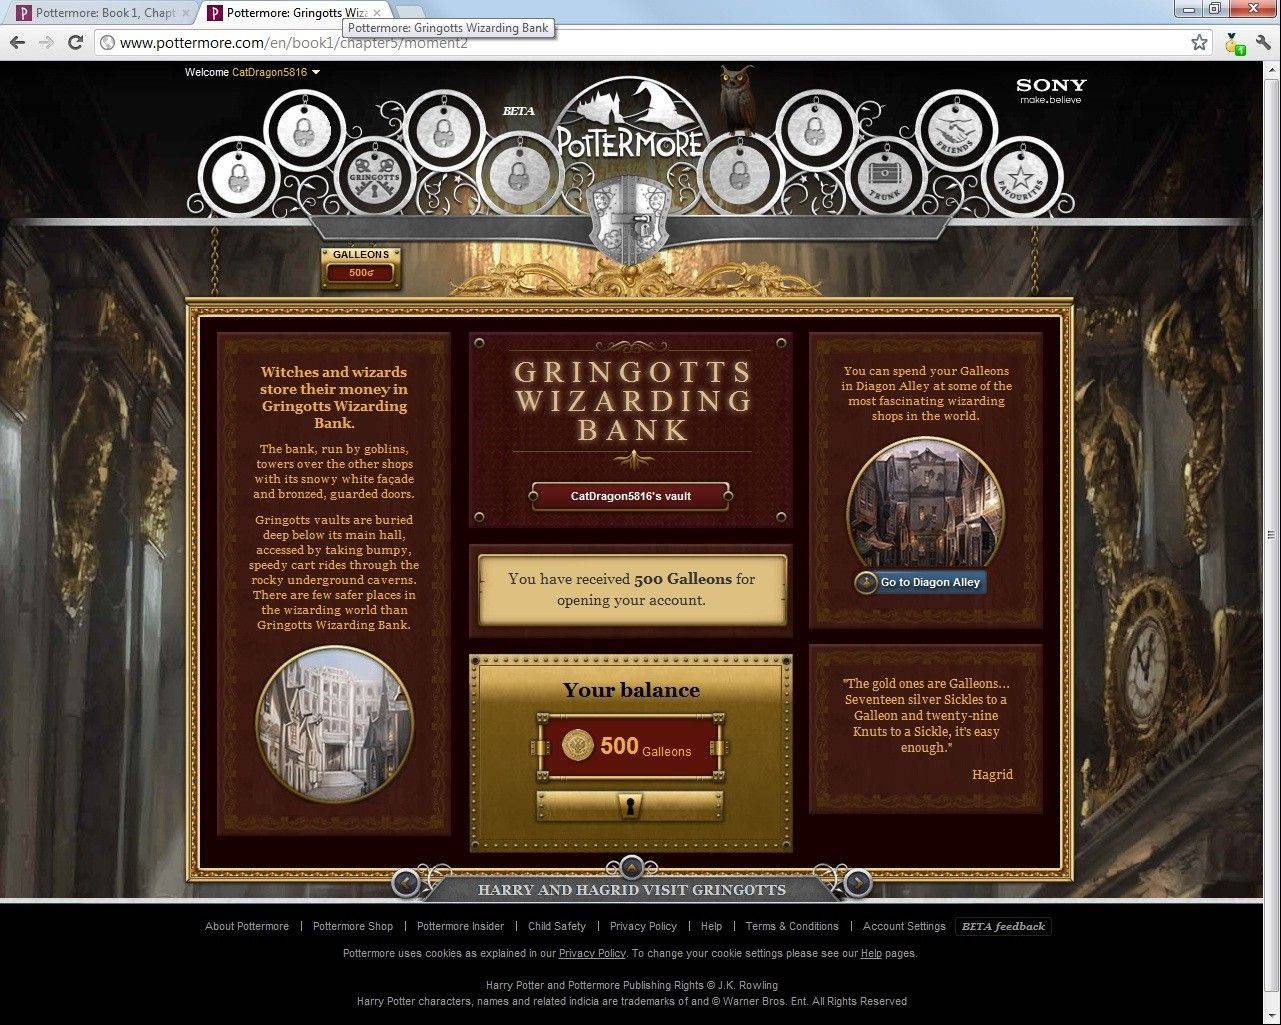 A screenshot of the website Pottermore. One million fans who were able to solve riddles and find a Magical Quill have had a chance to try out Pottermore for nearly a year. The rest of us, the magic-free Muggles, had to wait until it opened to the general public this spring.